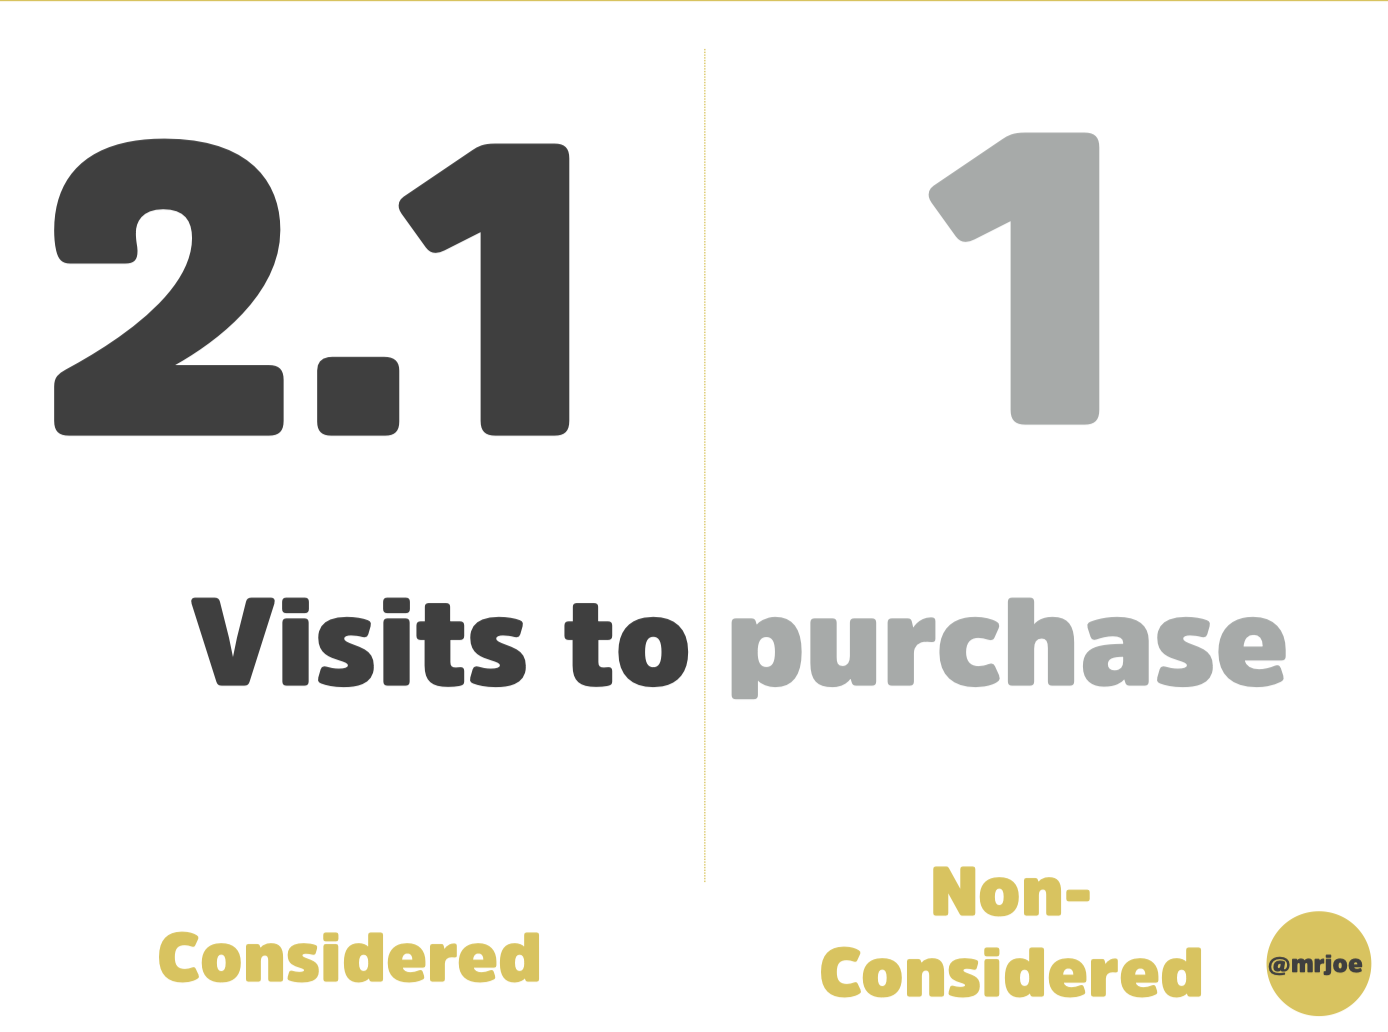 2.1 to 1 the visits to purchase